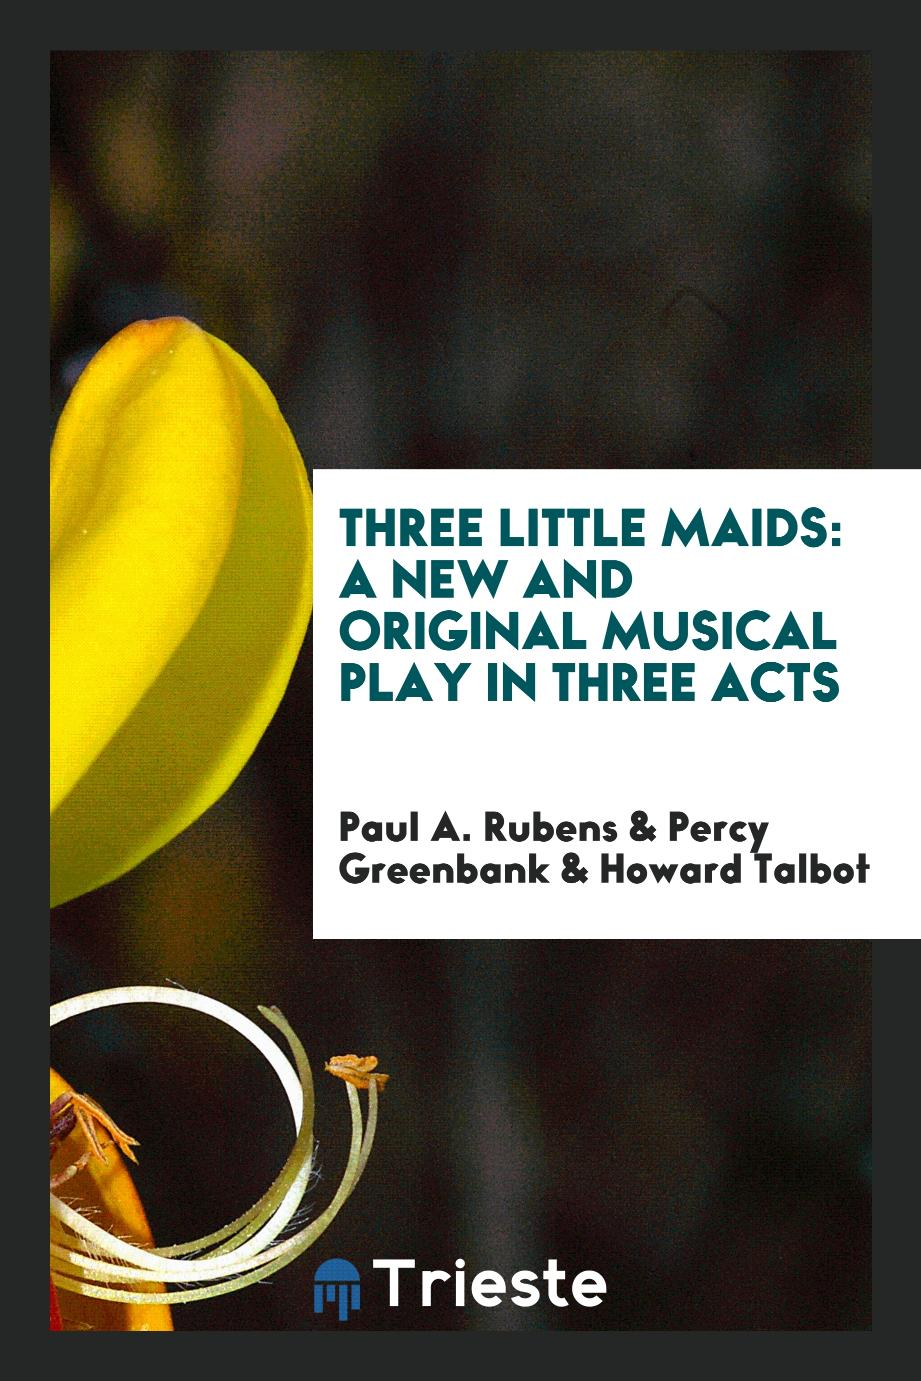 Three Little Maids: A New and Original Musical Play in Three Acts